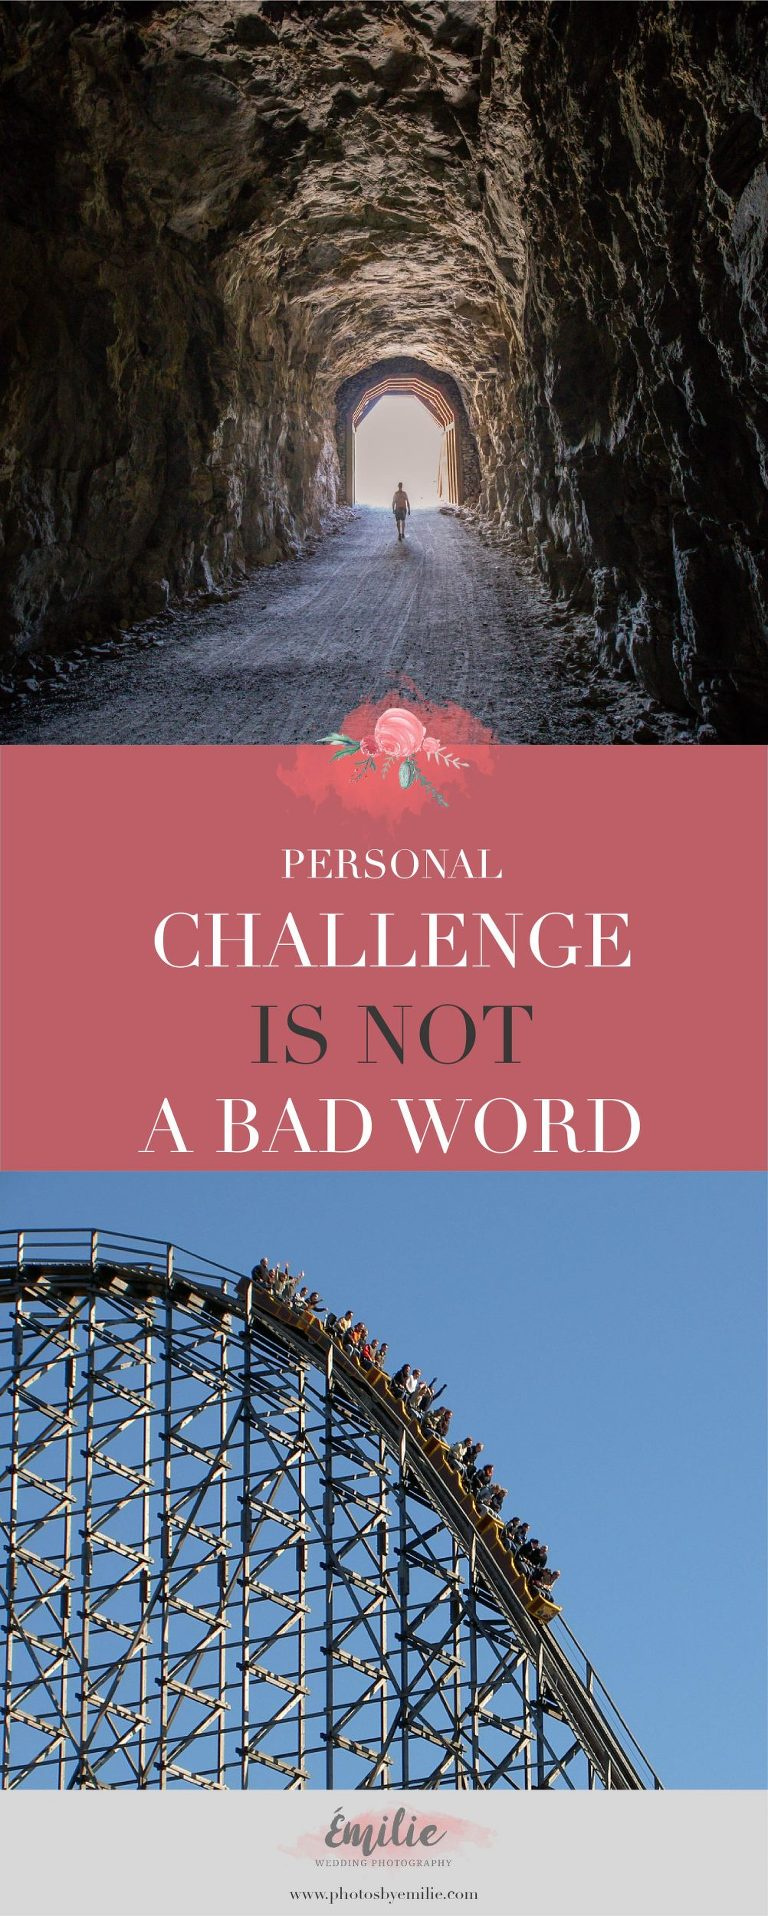 challenge-is-not-a-bad-word